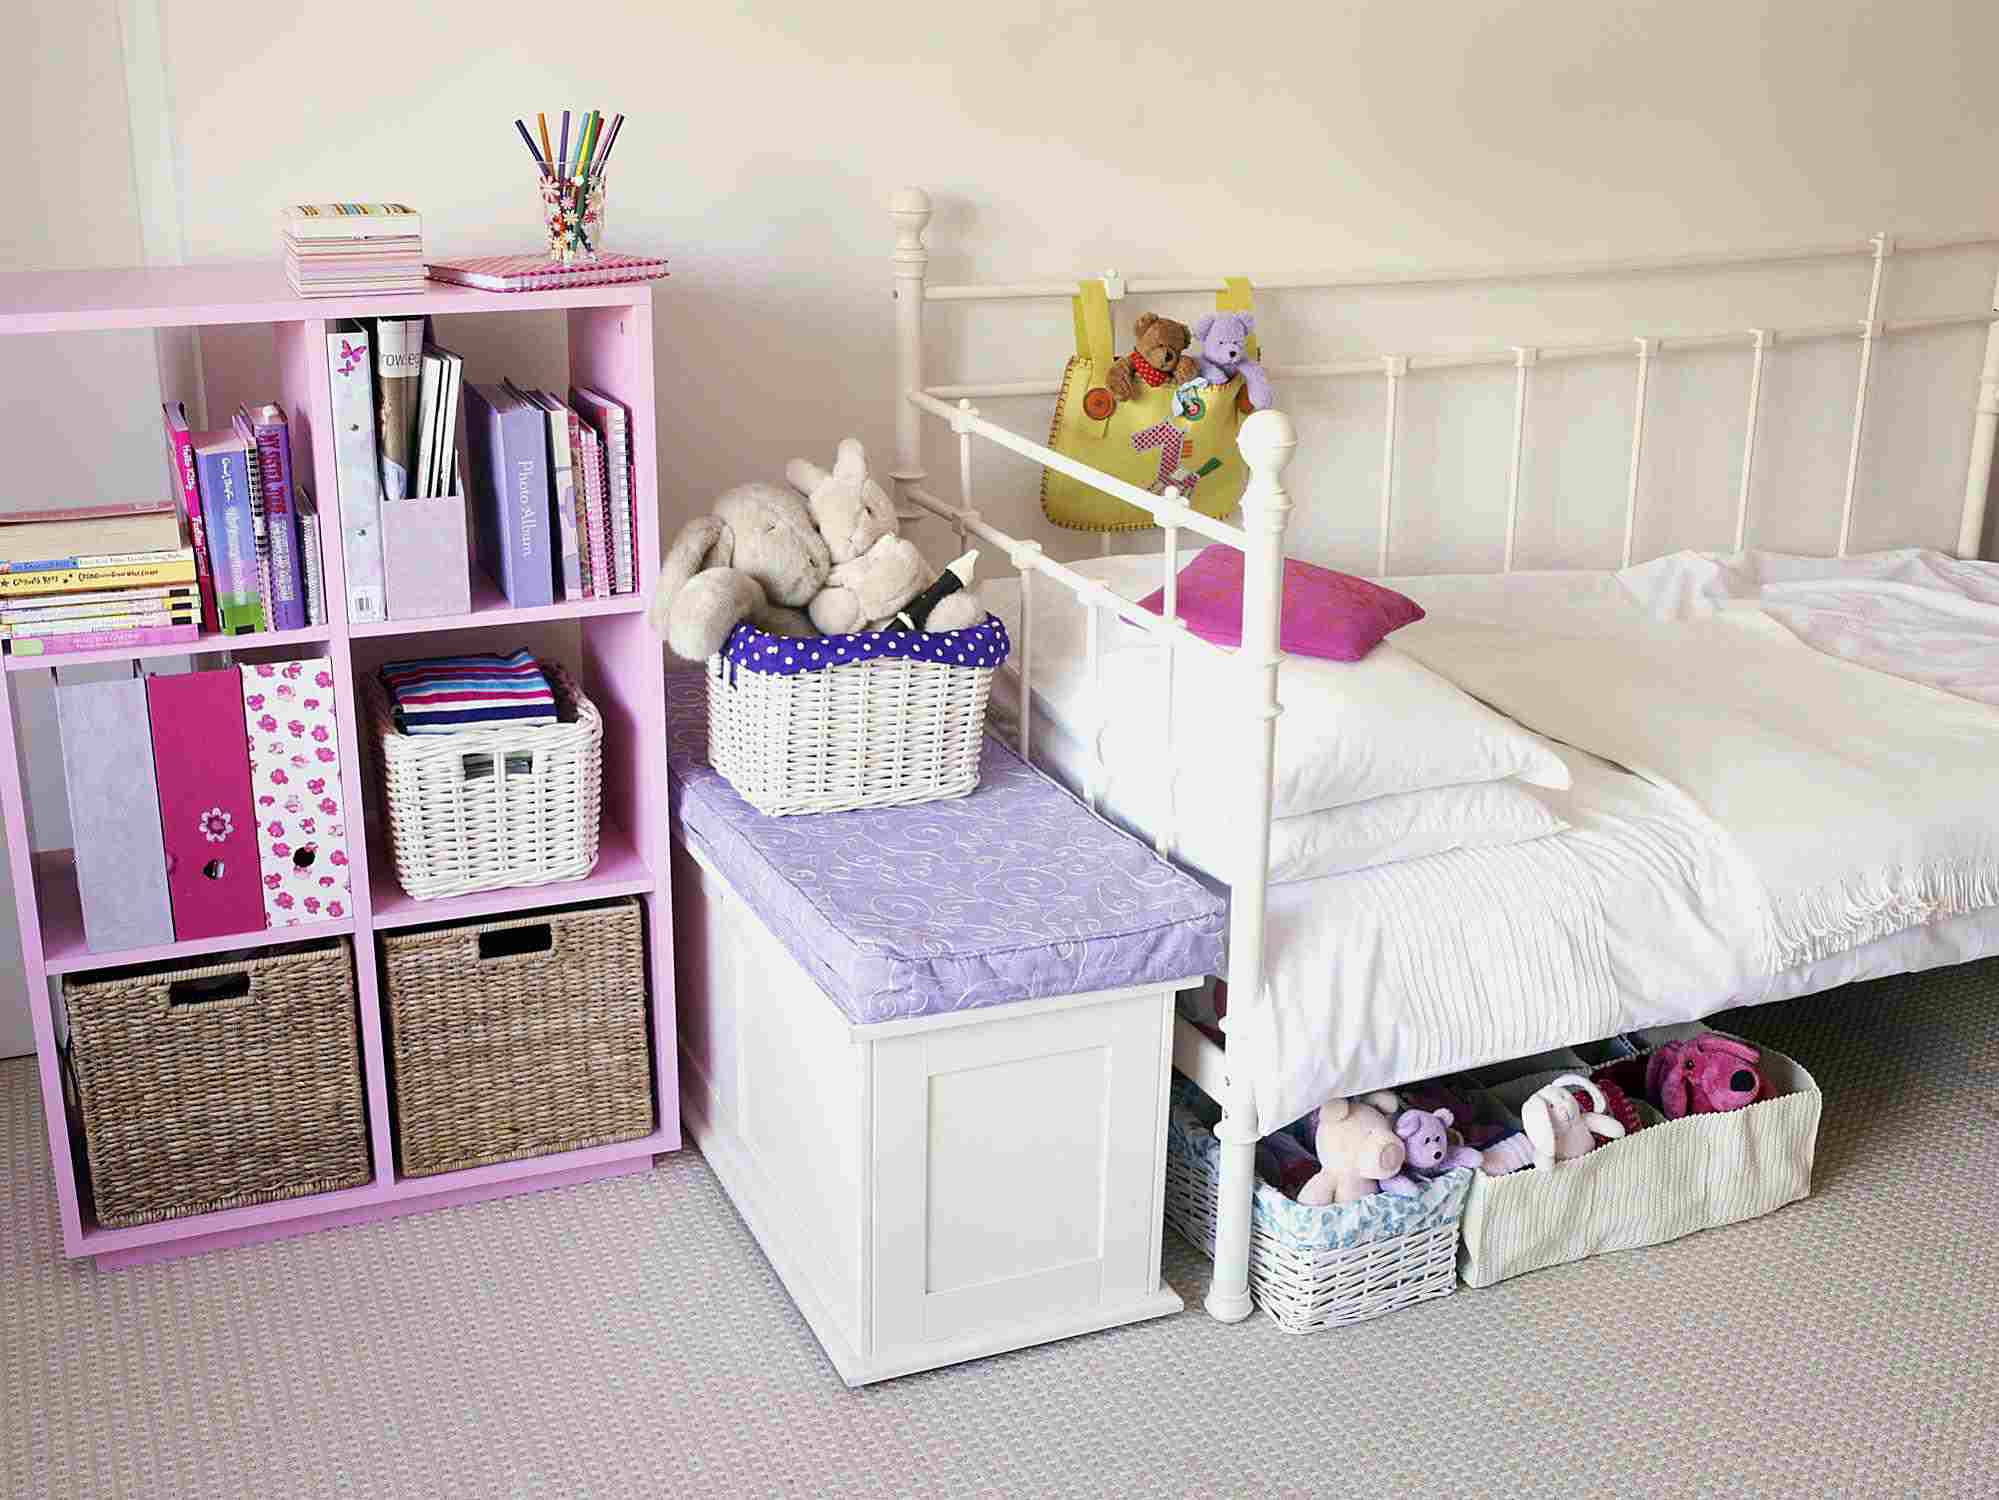 A picture of an organized bedroom